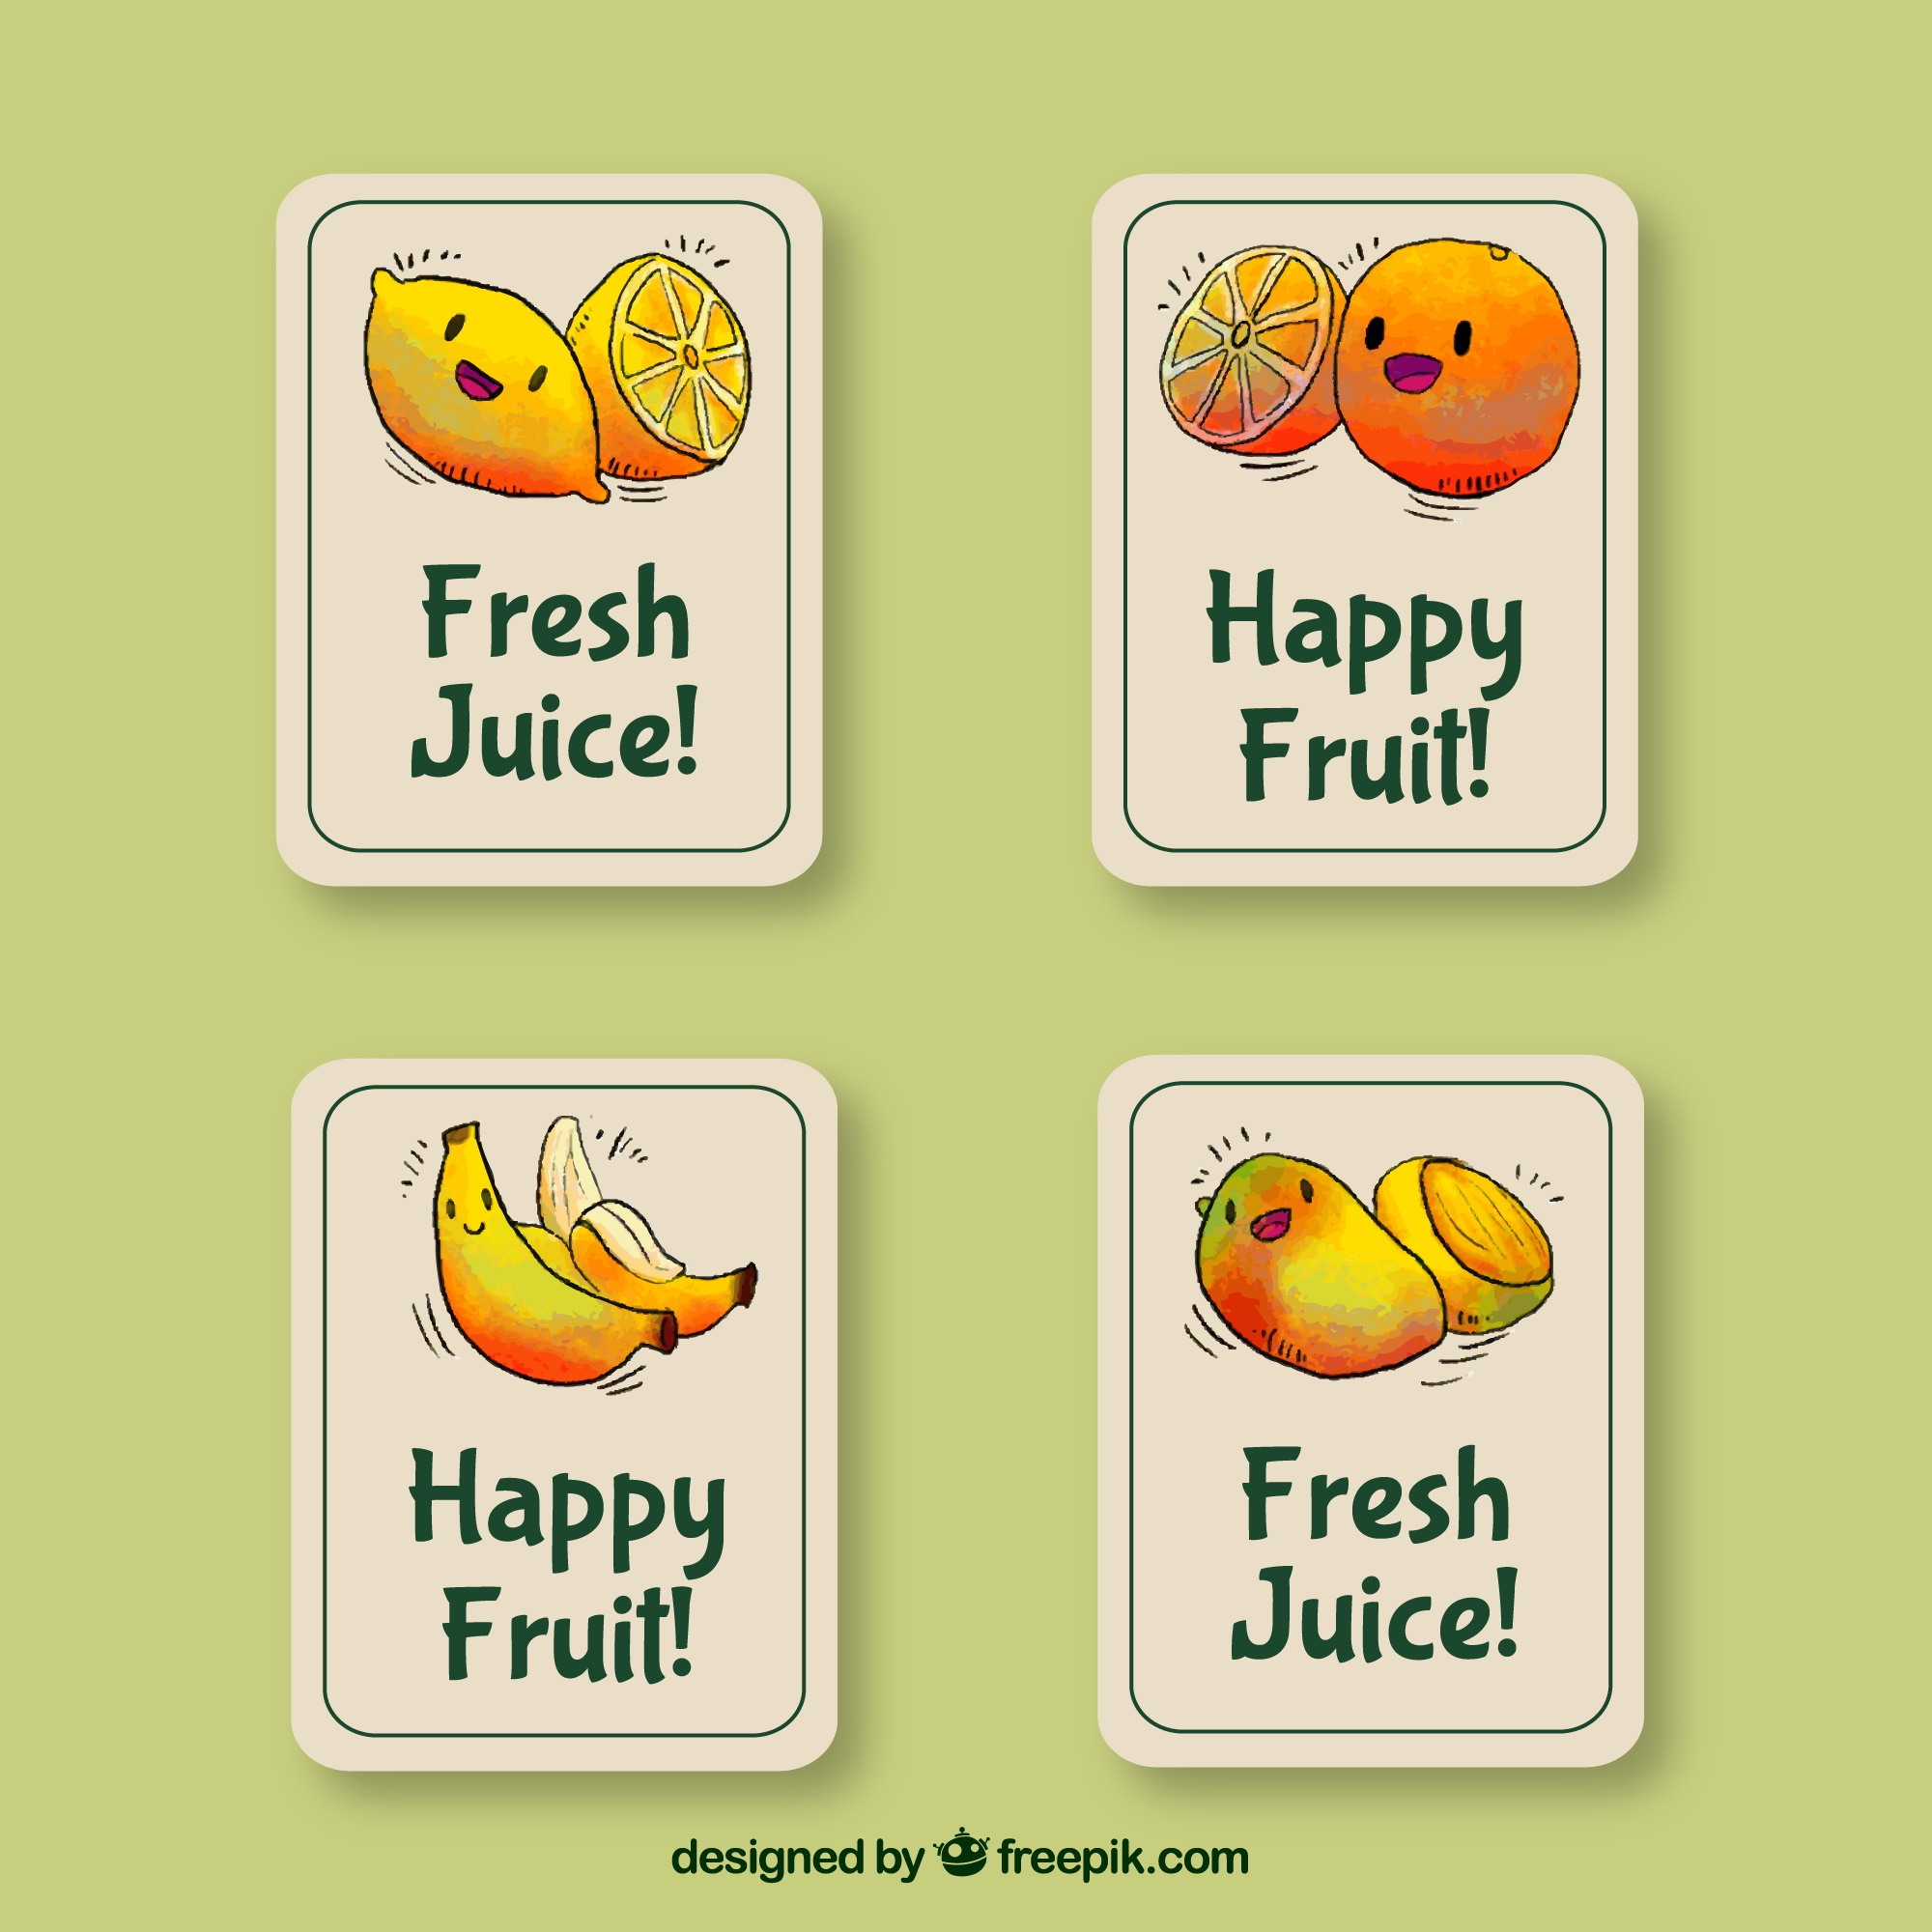 Decorative stickers with smiling fruit characters